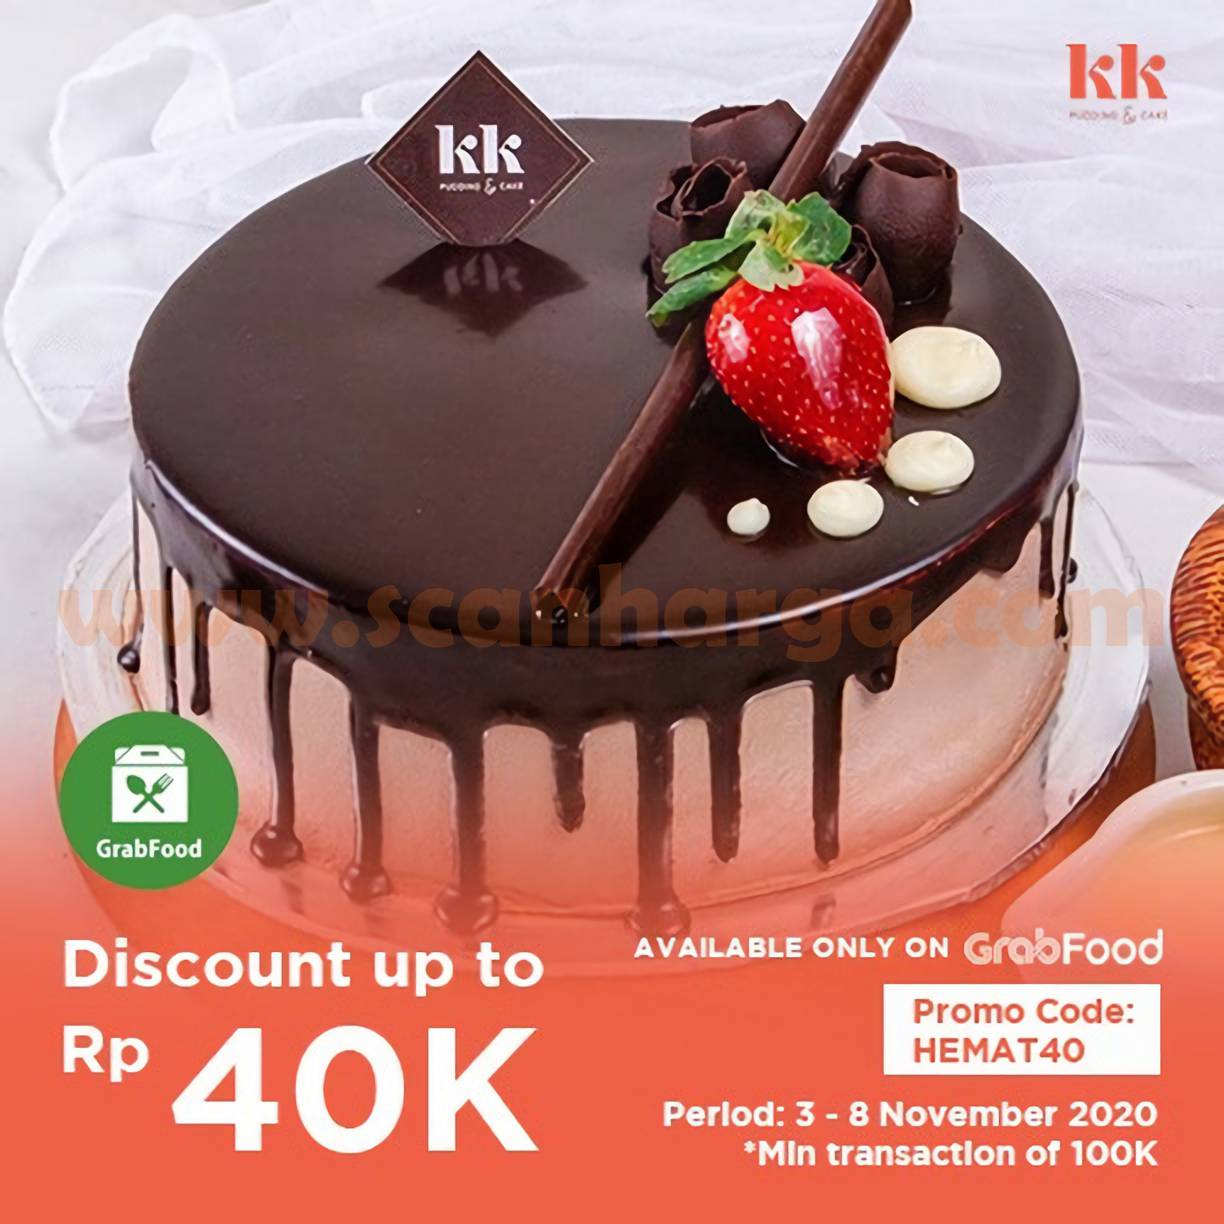 Promo KK Pudding & Cake Disc Up to 40% khusus pemesanan via Grabfood